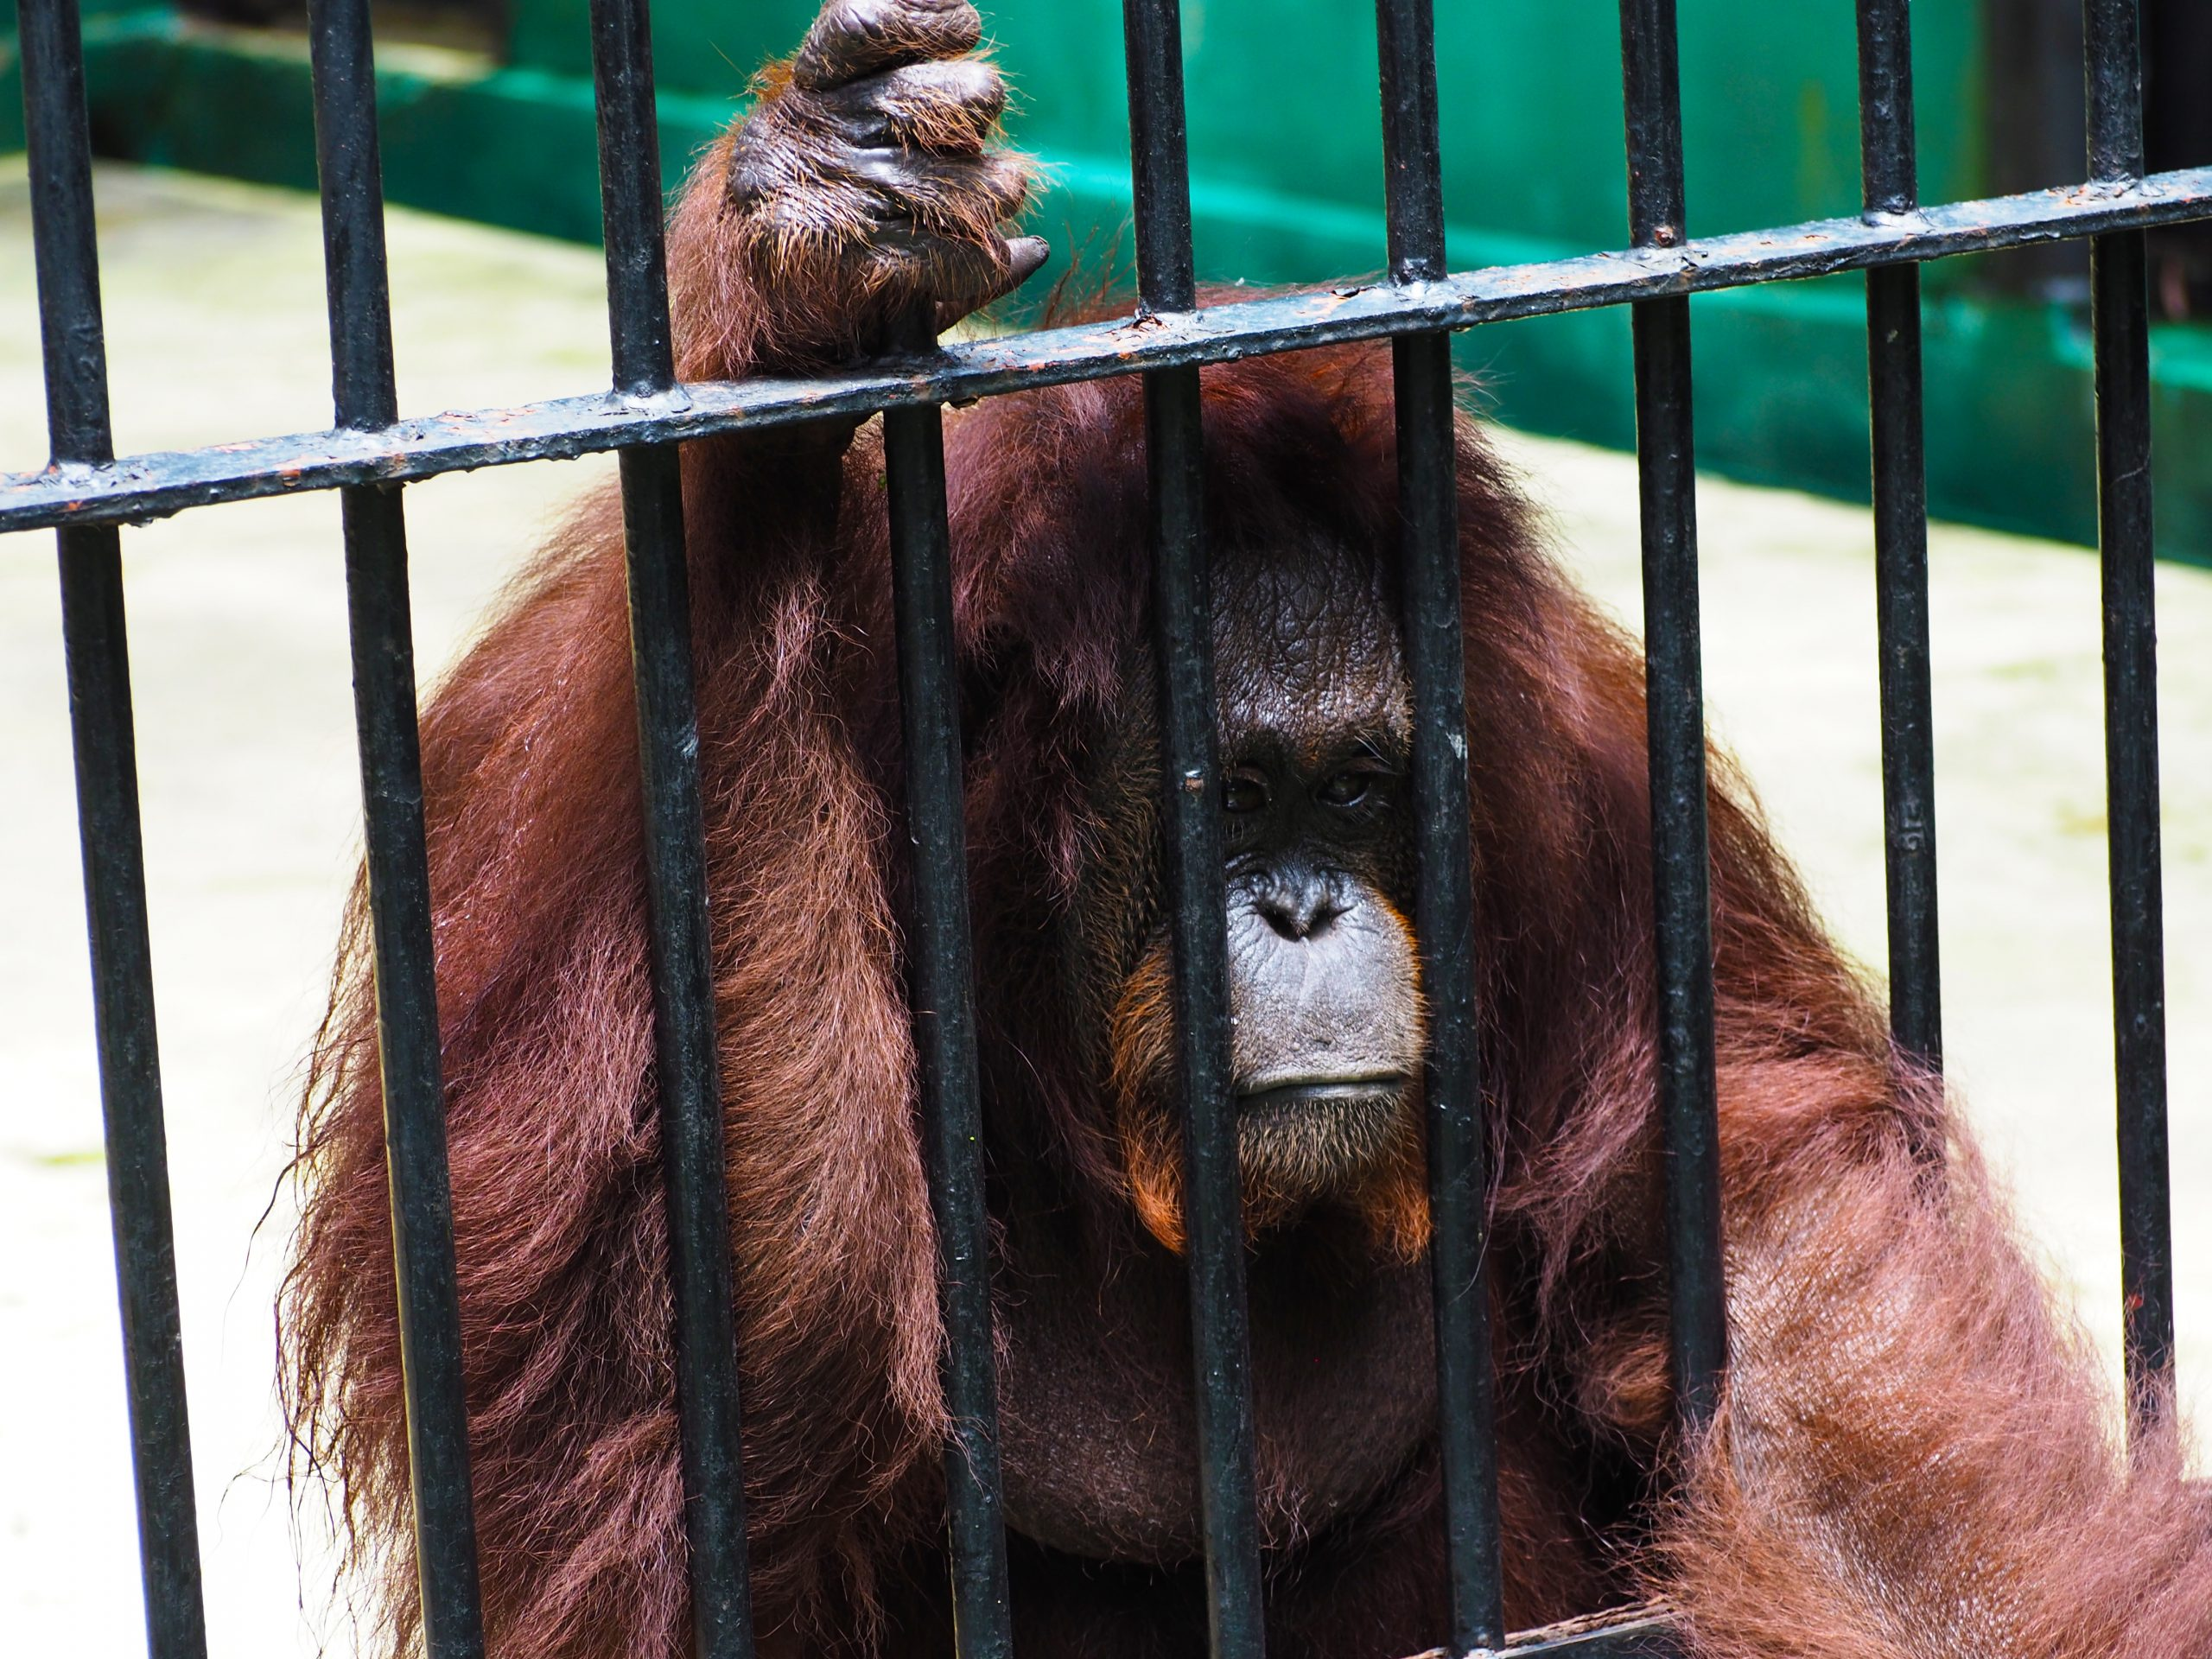 Ape in Cage